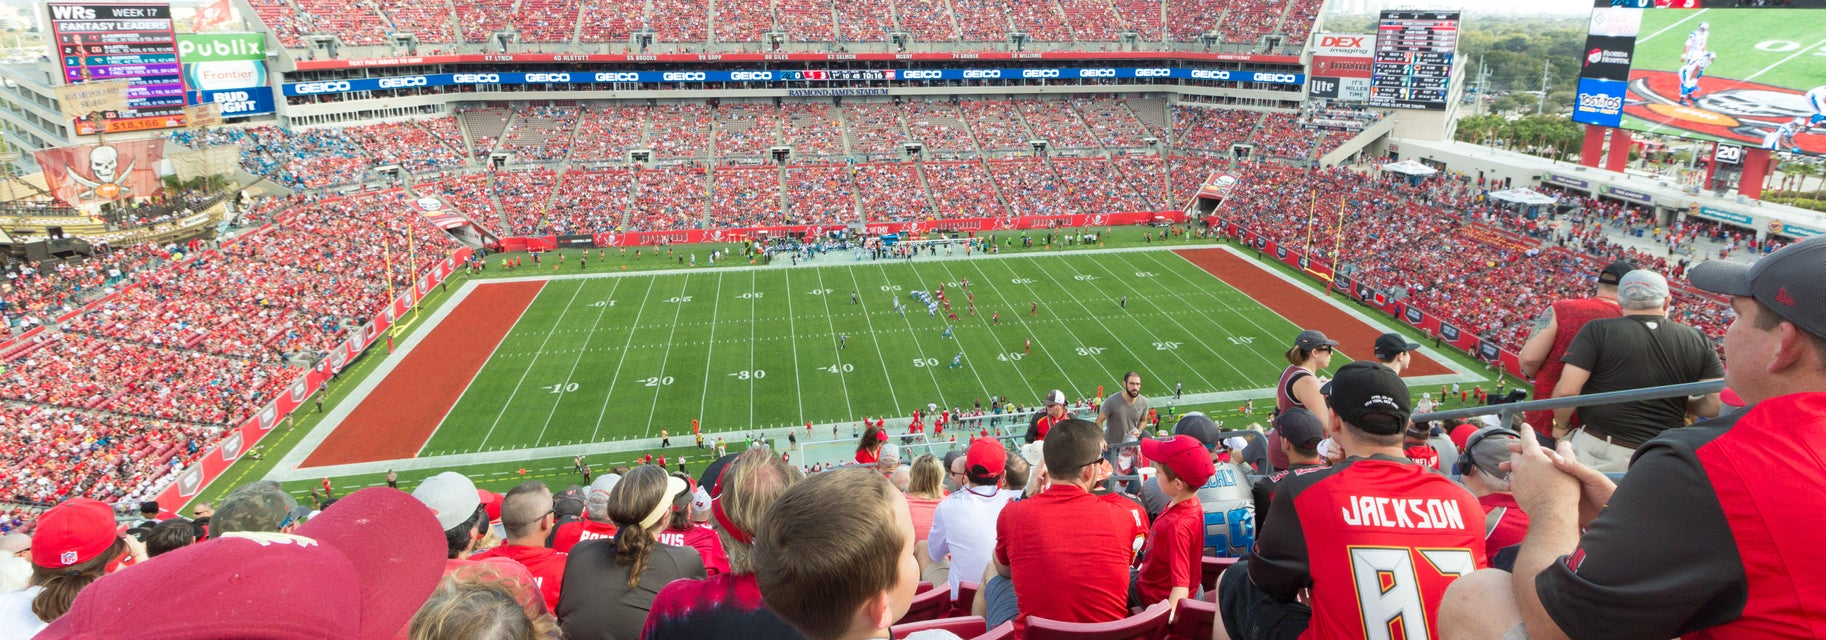 Seat view from Upper Deck